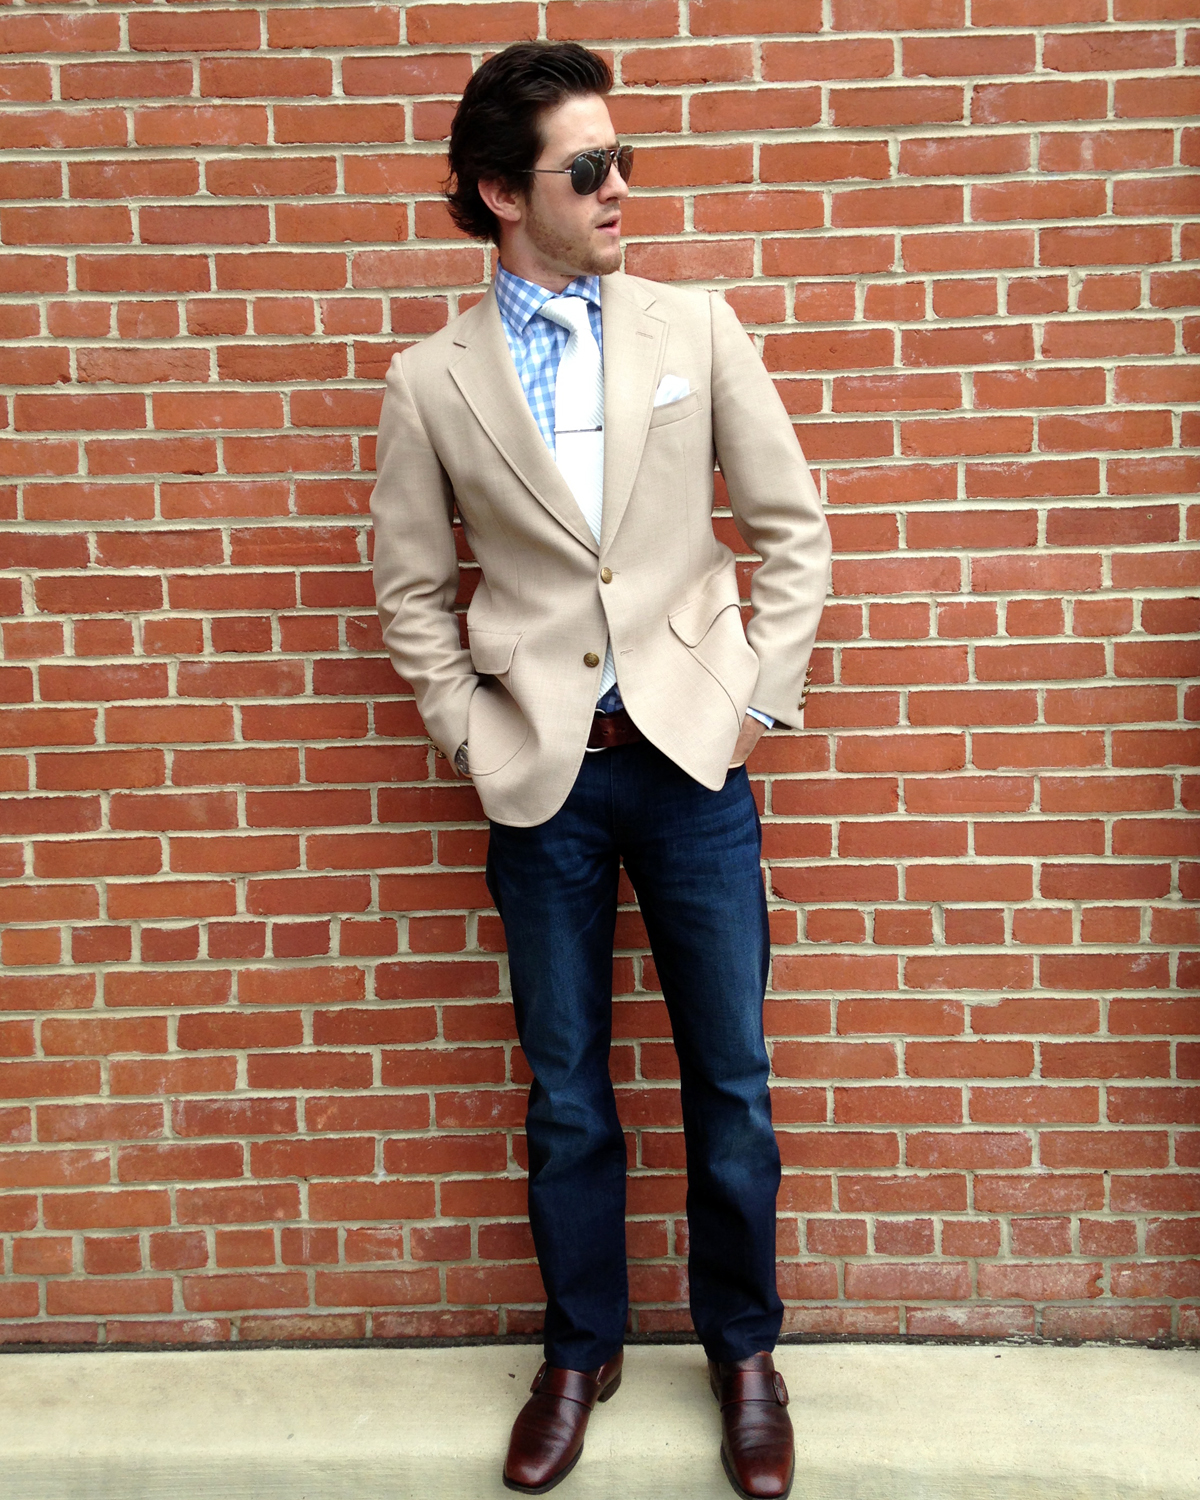 The blue blazer is often worn with khaki or tan colored pants, but the reverse doesn't work quite as well. Try a camel colored blazer with brown shoes and belt for a formal but fun look. The camel blazer and navy pants combo looks great during the summer months as a unique, fashion-forward ensemble.